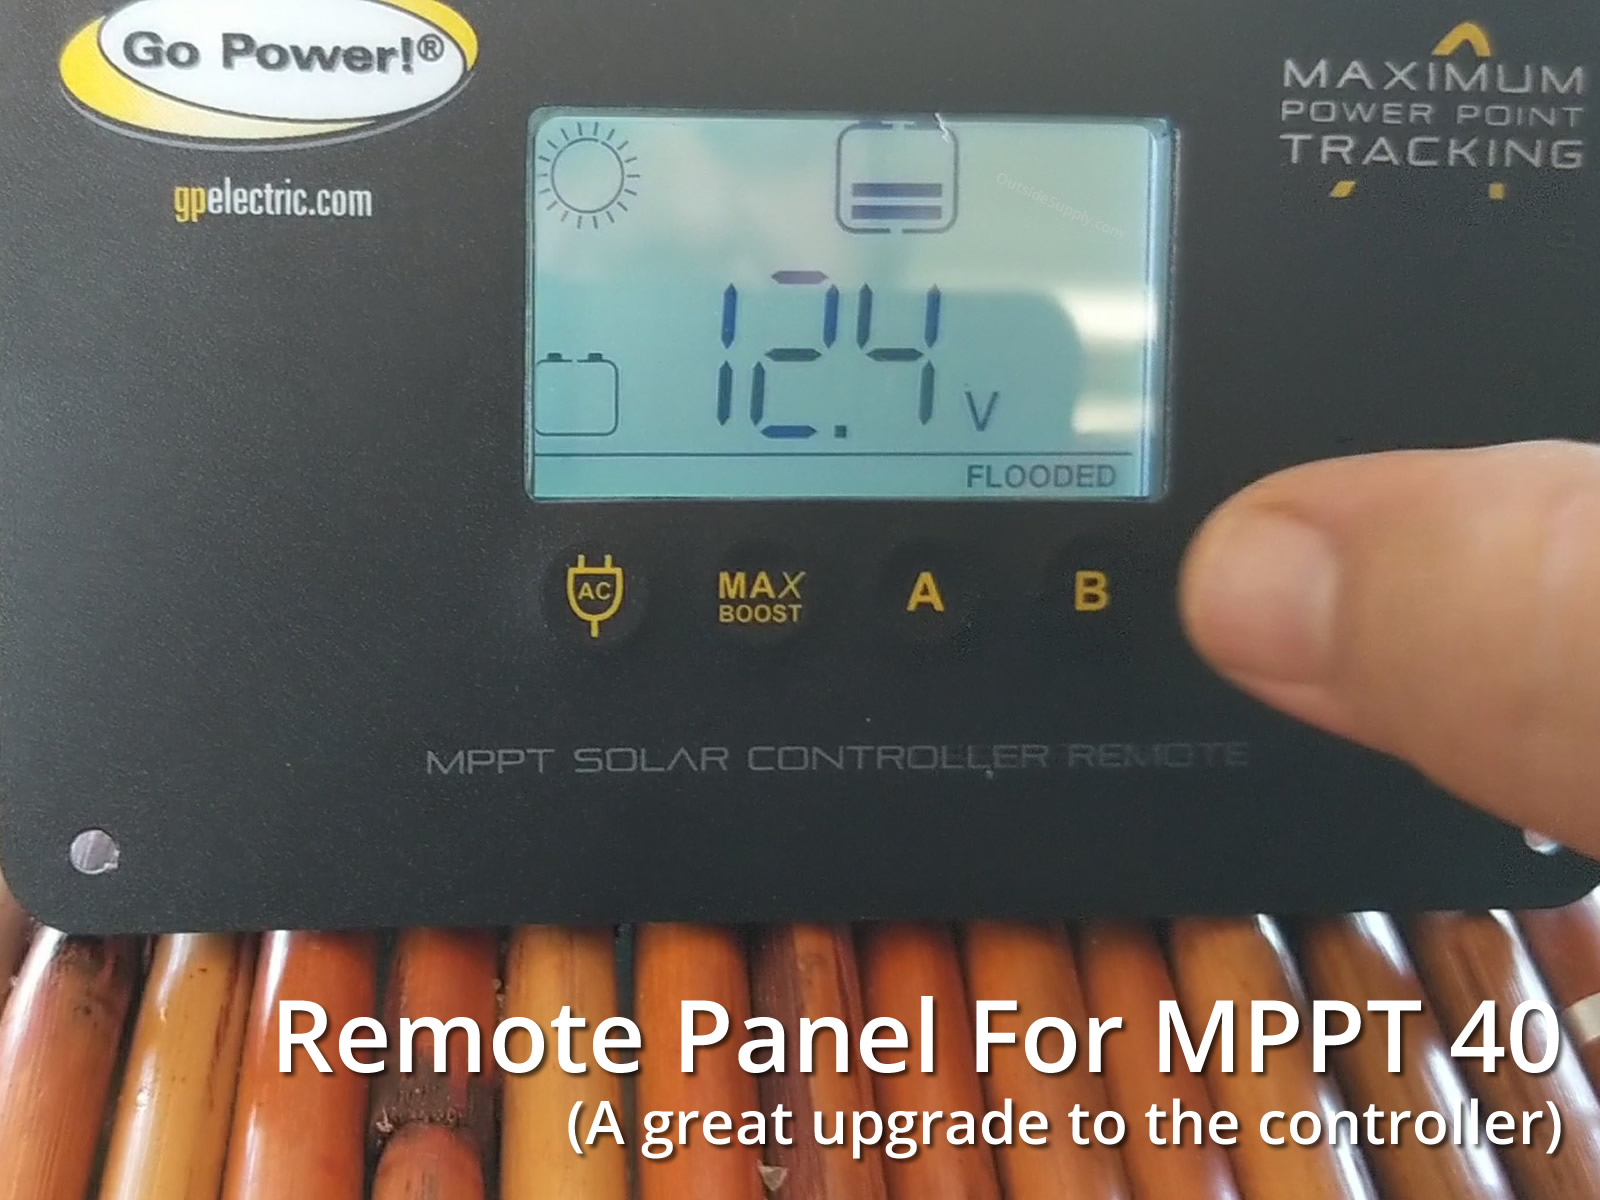 Remote display panel for the Go Power GP-MPPT-40 solar battery charge controller